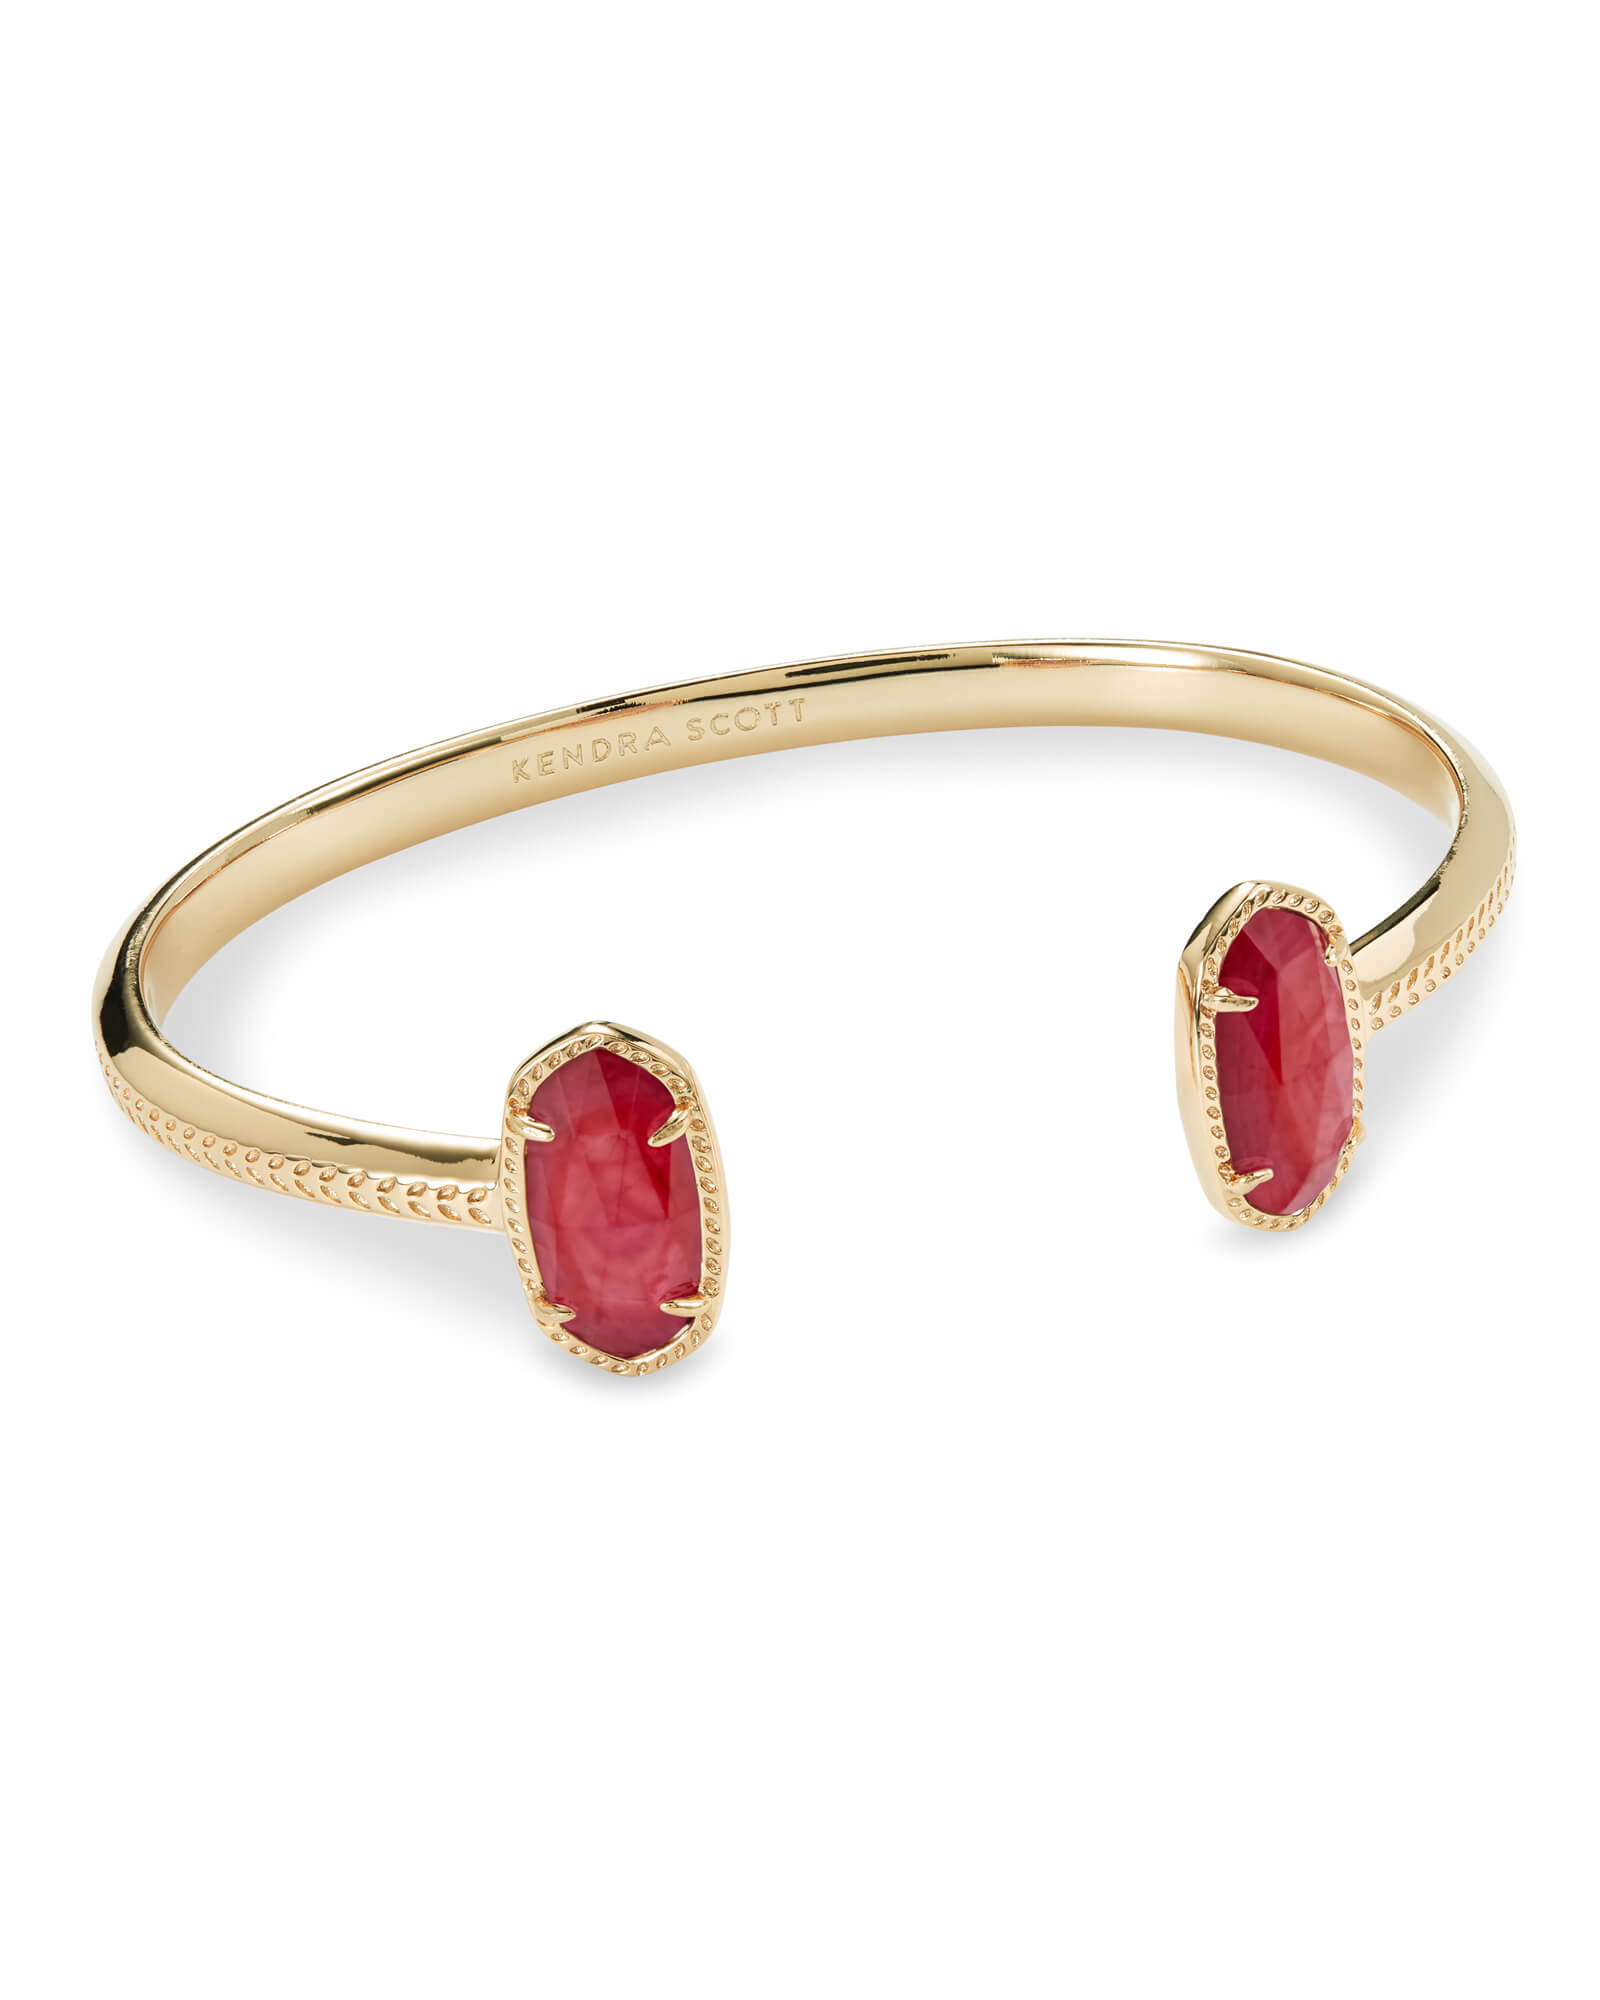 Elton Gold Cuff Bracelet in Red Mother of Pearl